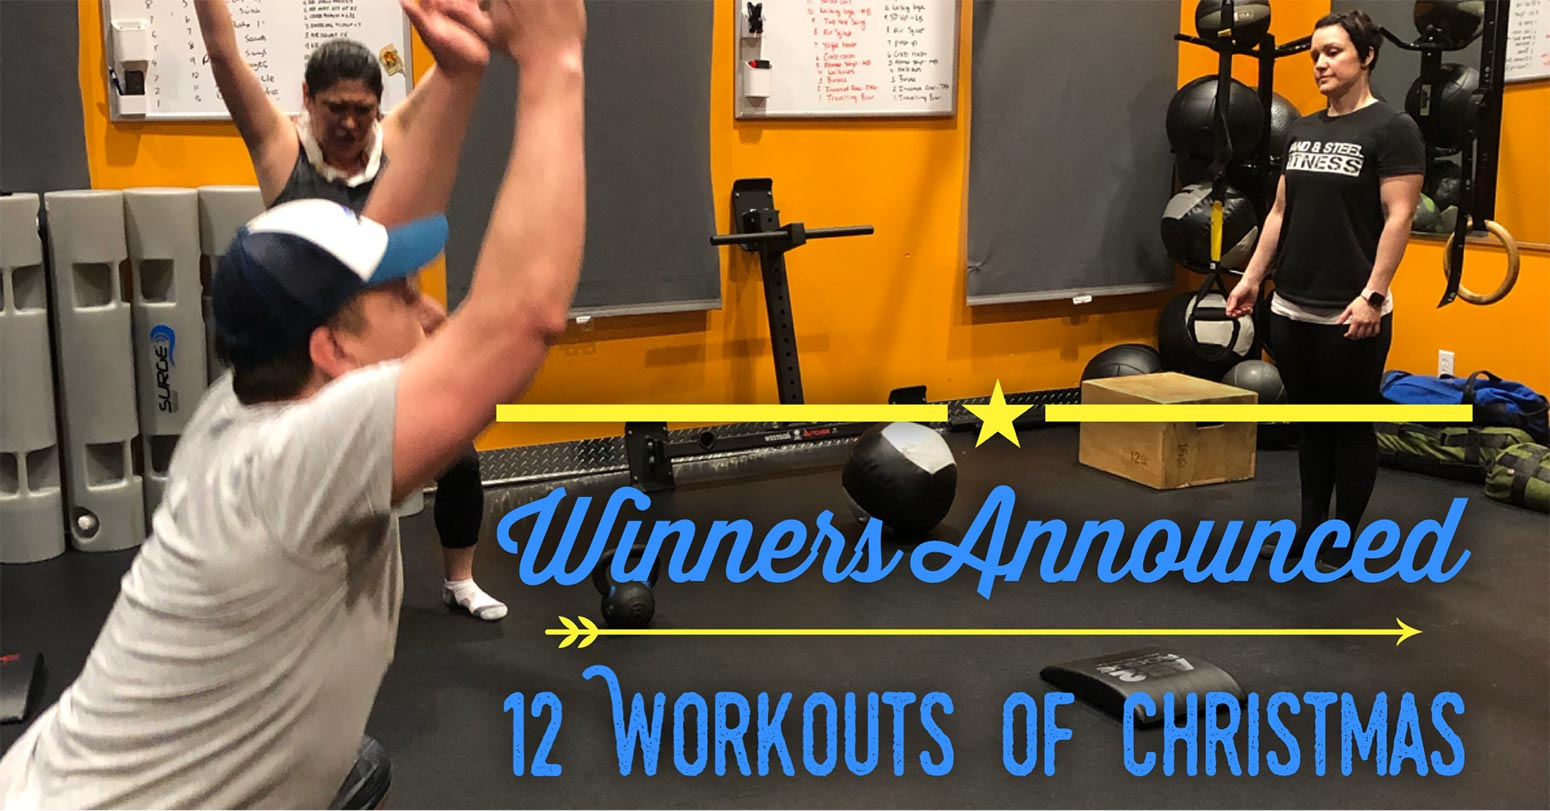 Winners Announced 12 Workouts of Christmas